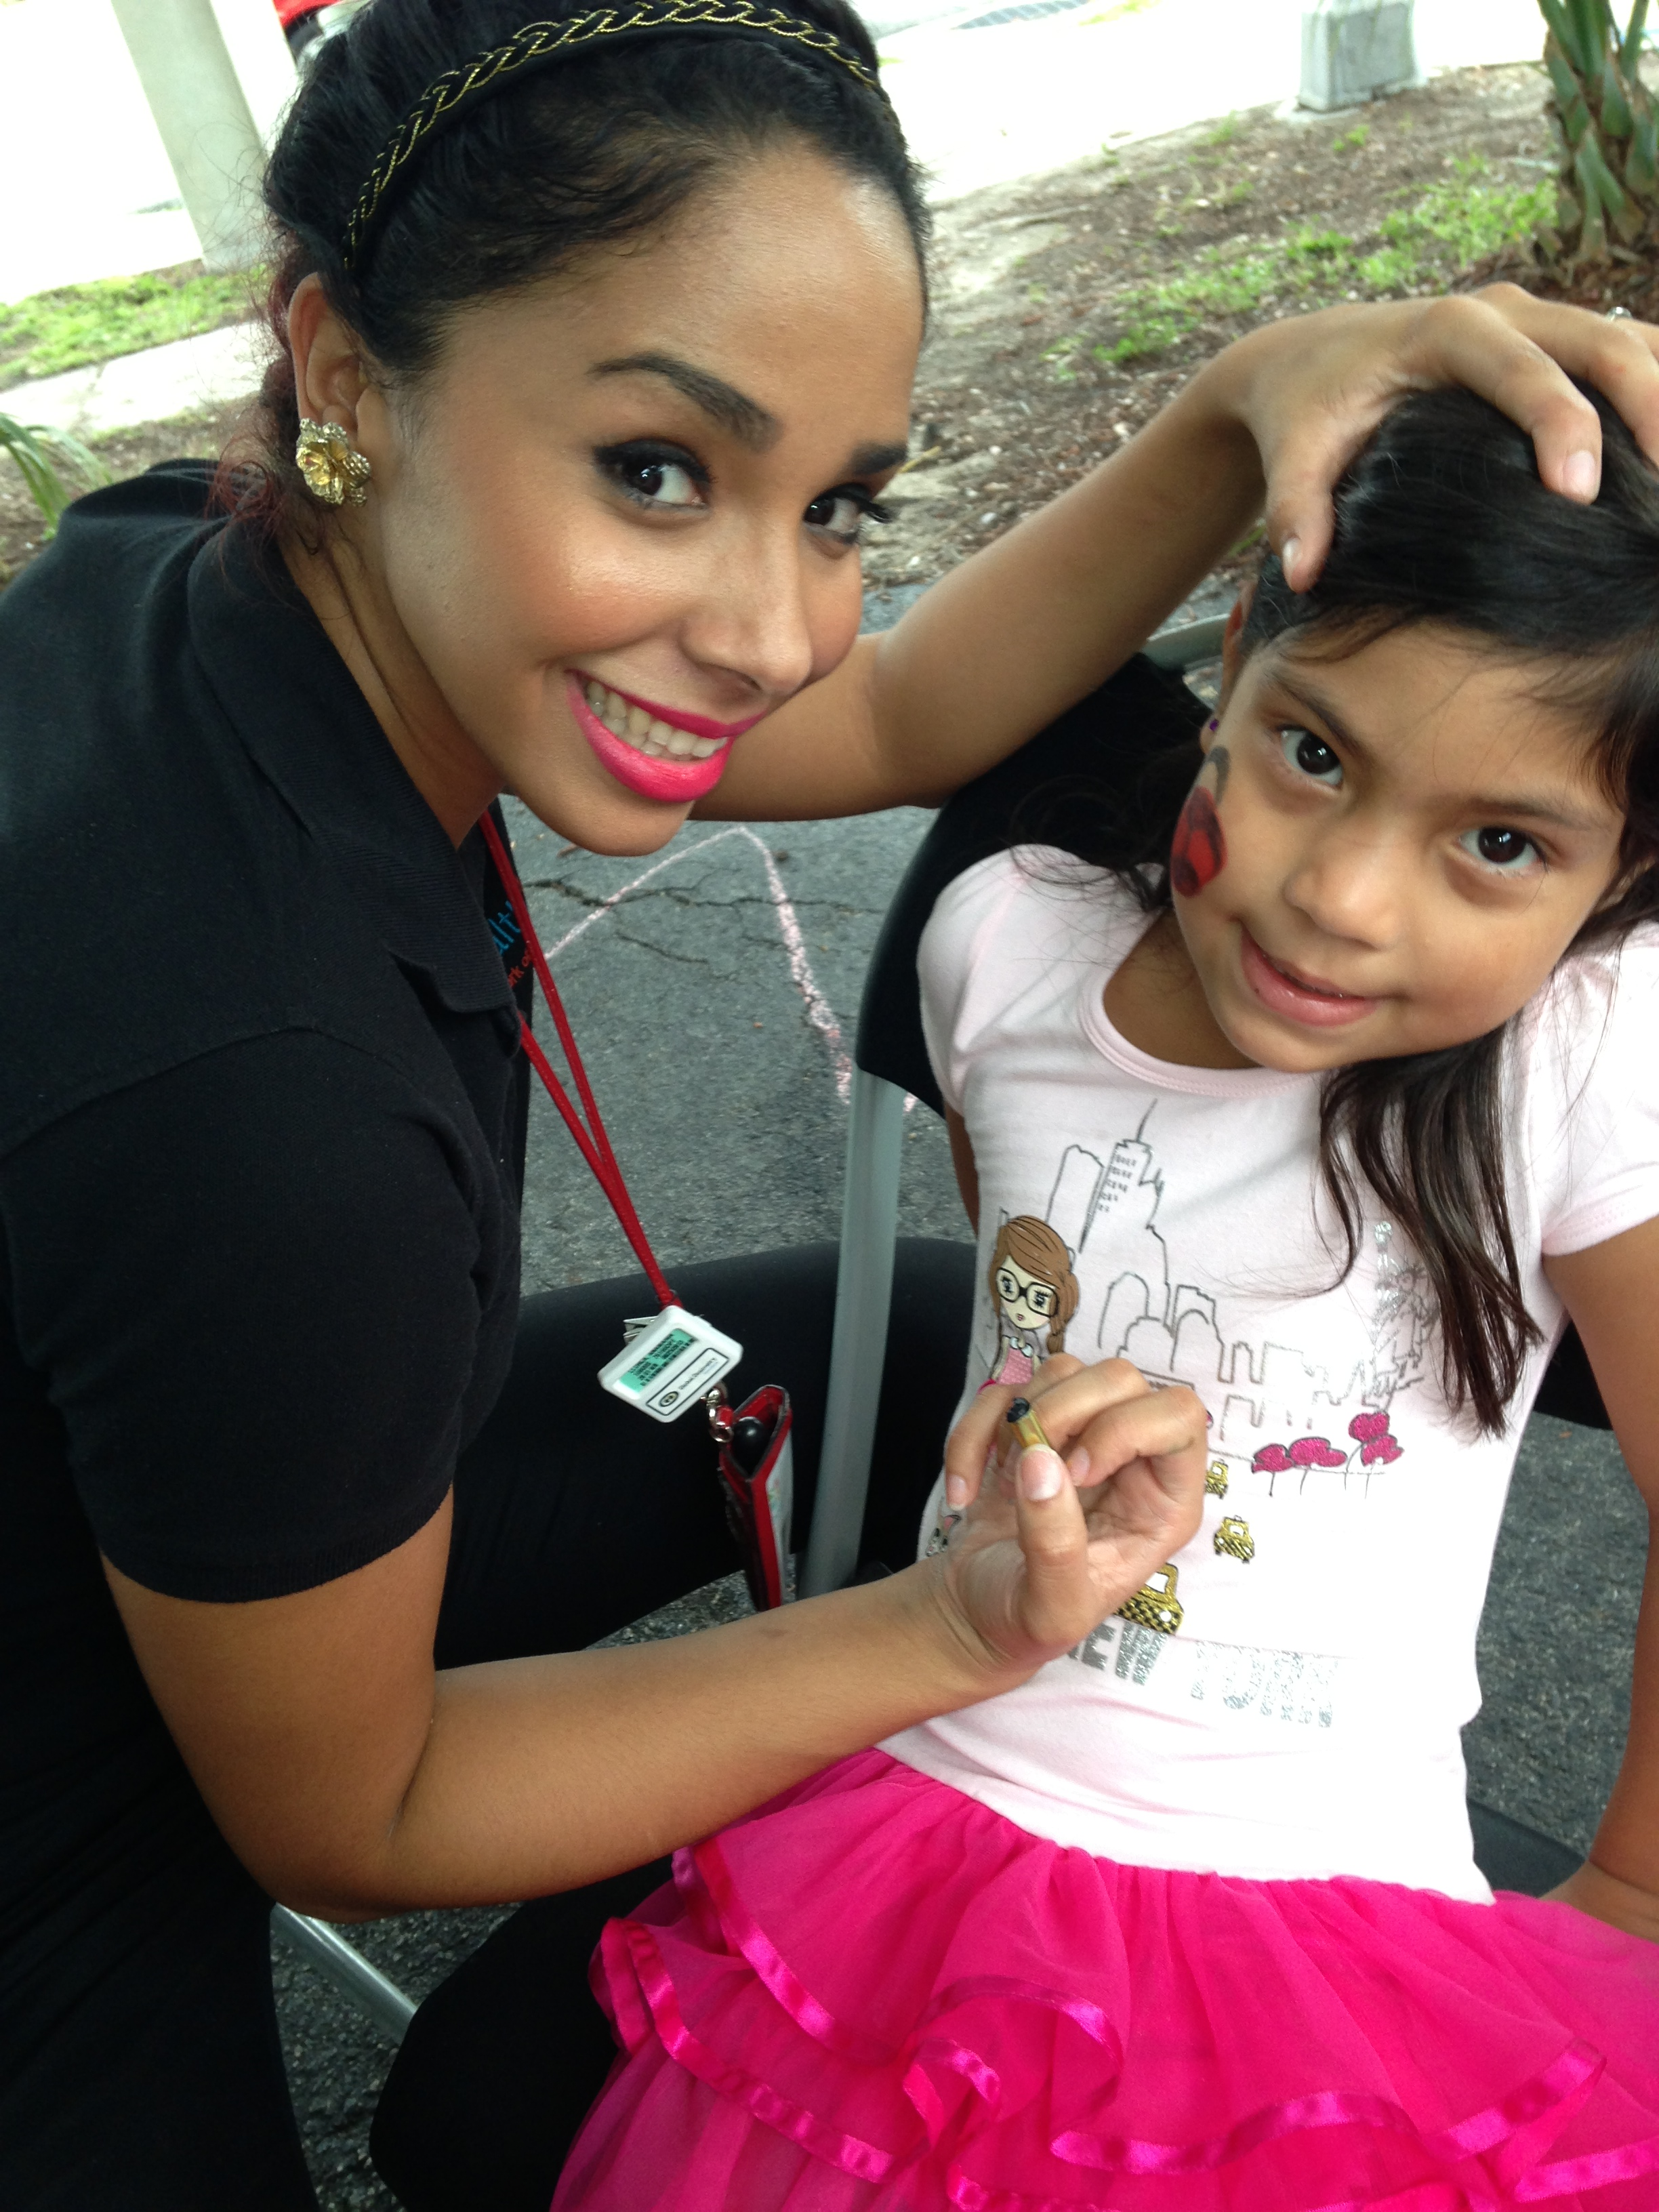 Healthcare Network of Southwest Florida dental assistant Anamaria Llorca paints a lady bug on Emily Bejarano's face during National Health Center Week festivities, Aug. 15, at the Golden Gate Community Center.